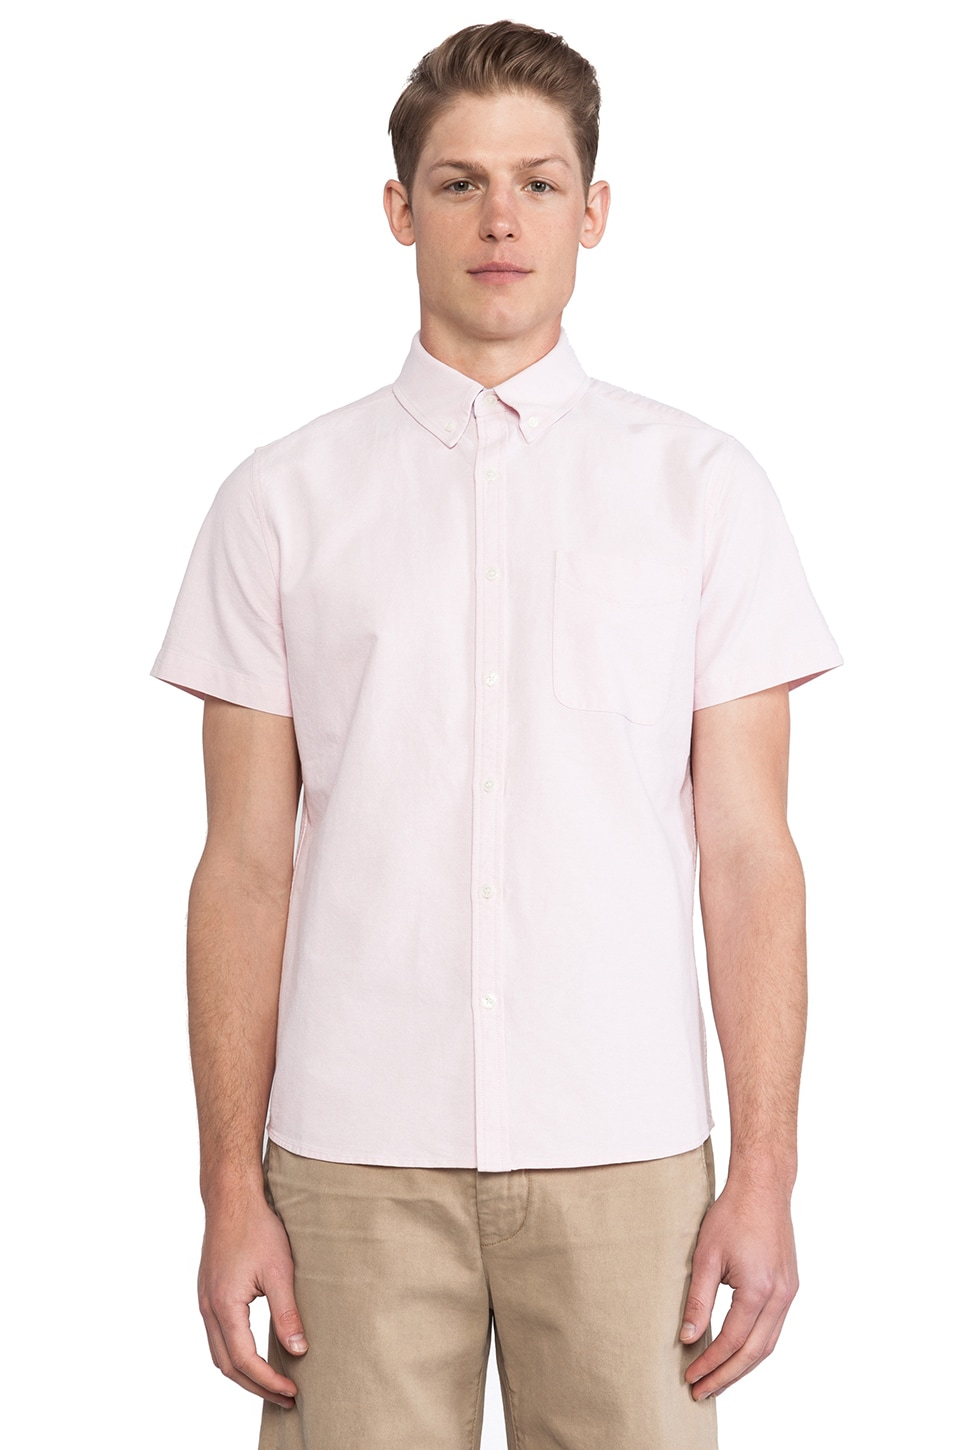 AG Adriano Goldschmied Aviator Shirt in Oxford Pink